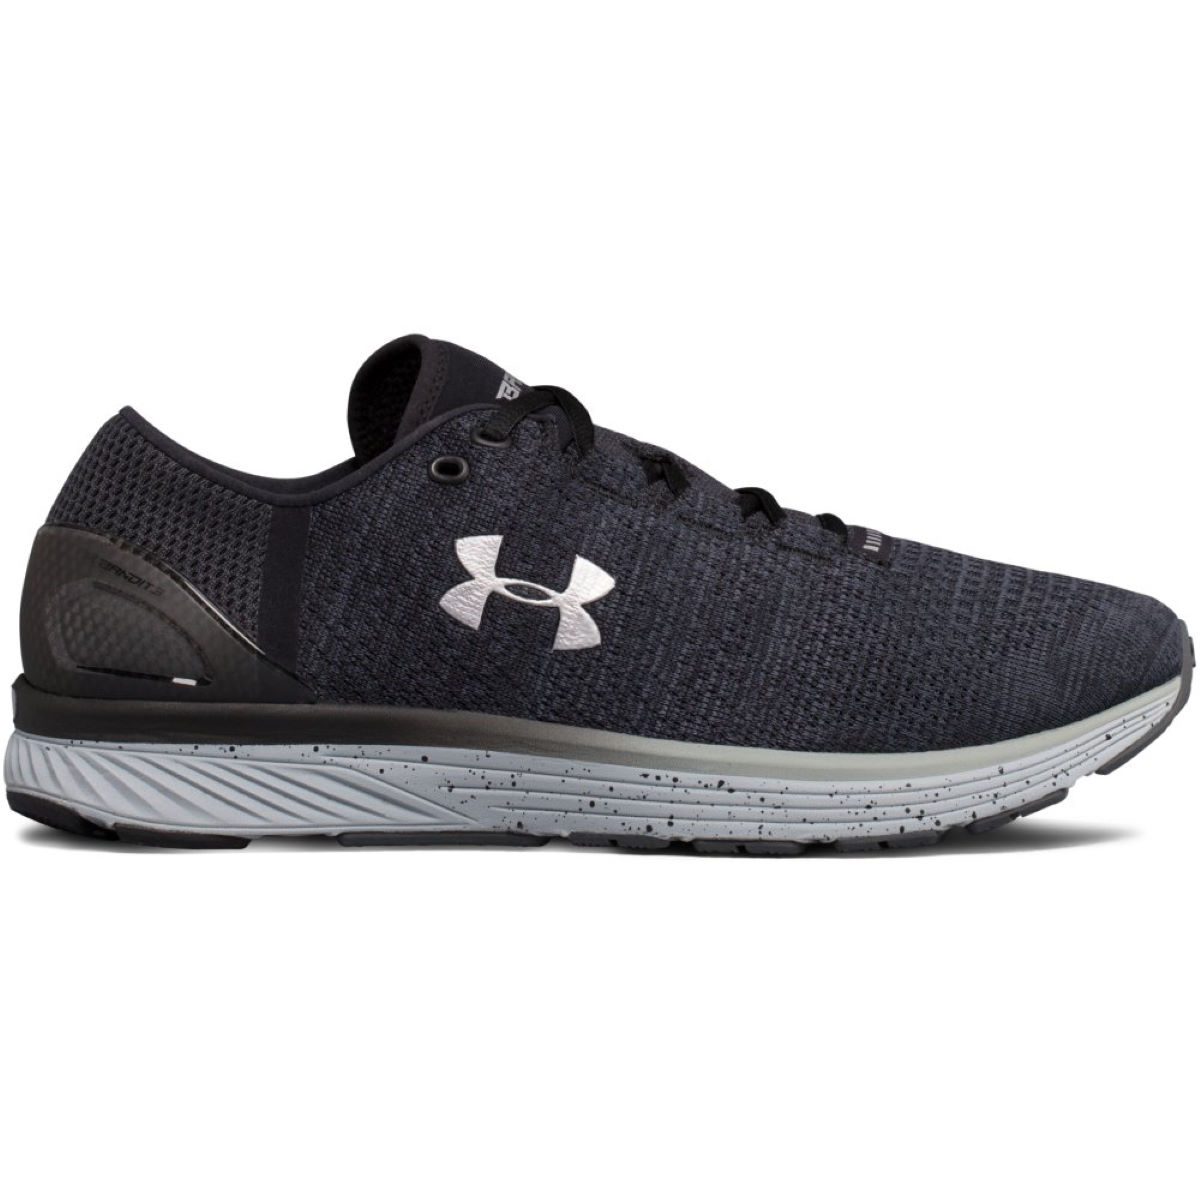 Chaussures Under Armour Charged Bandit 3 Run - UK 13 STEALTH GRAY